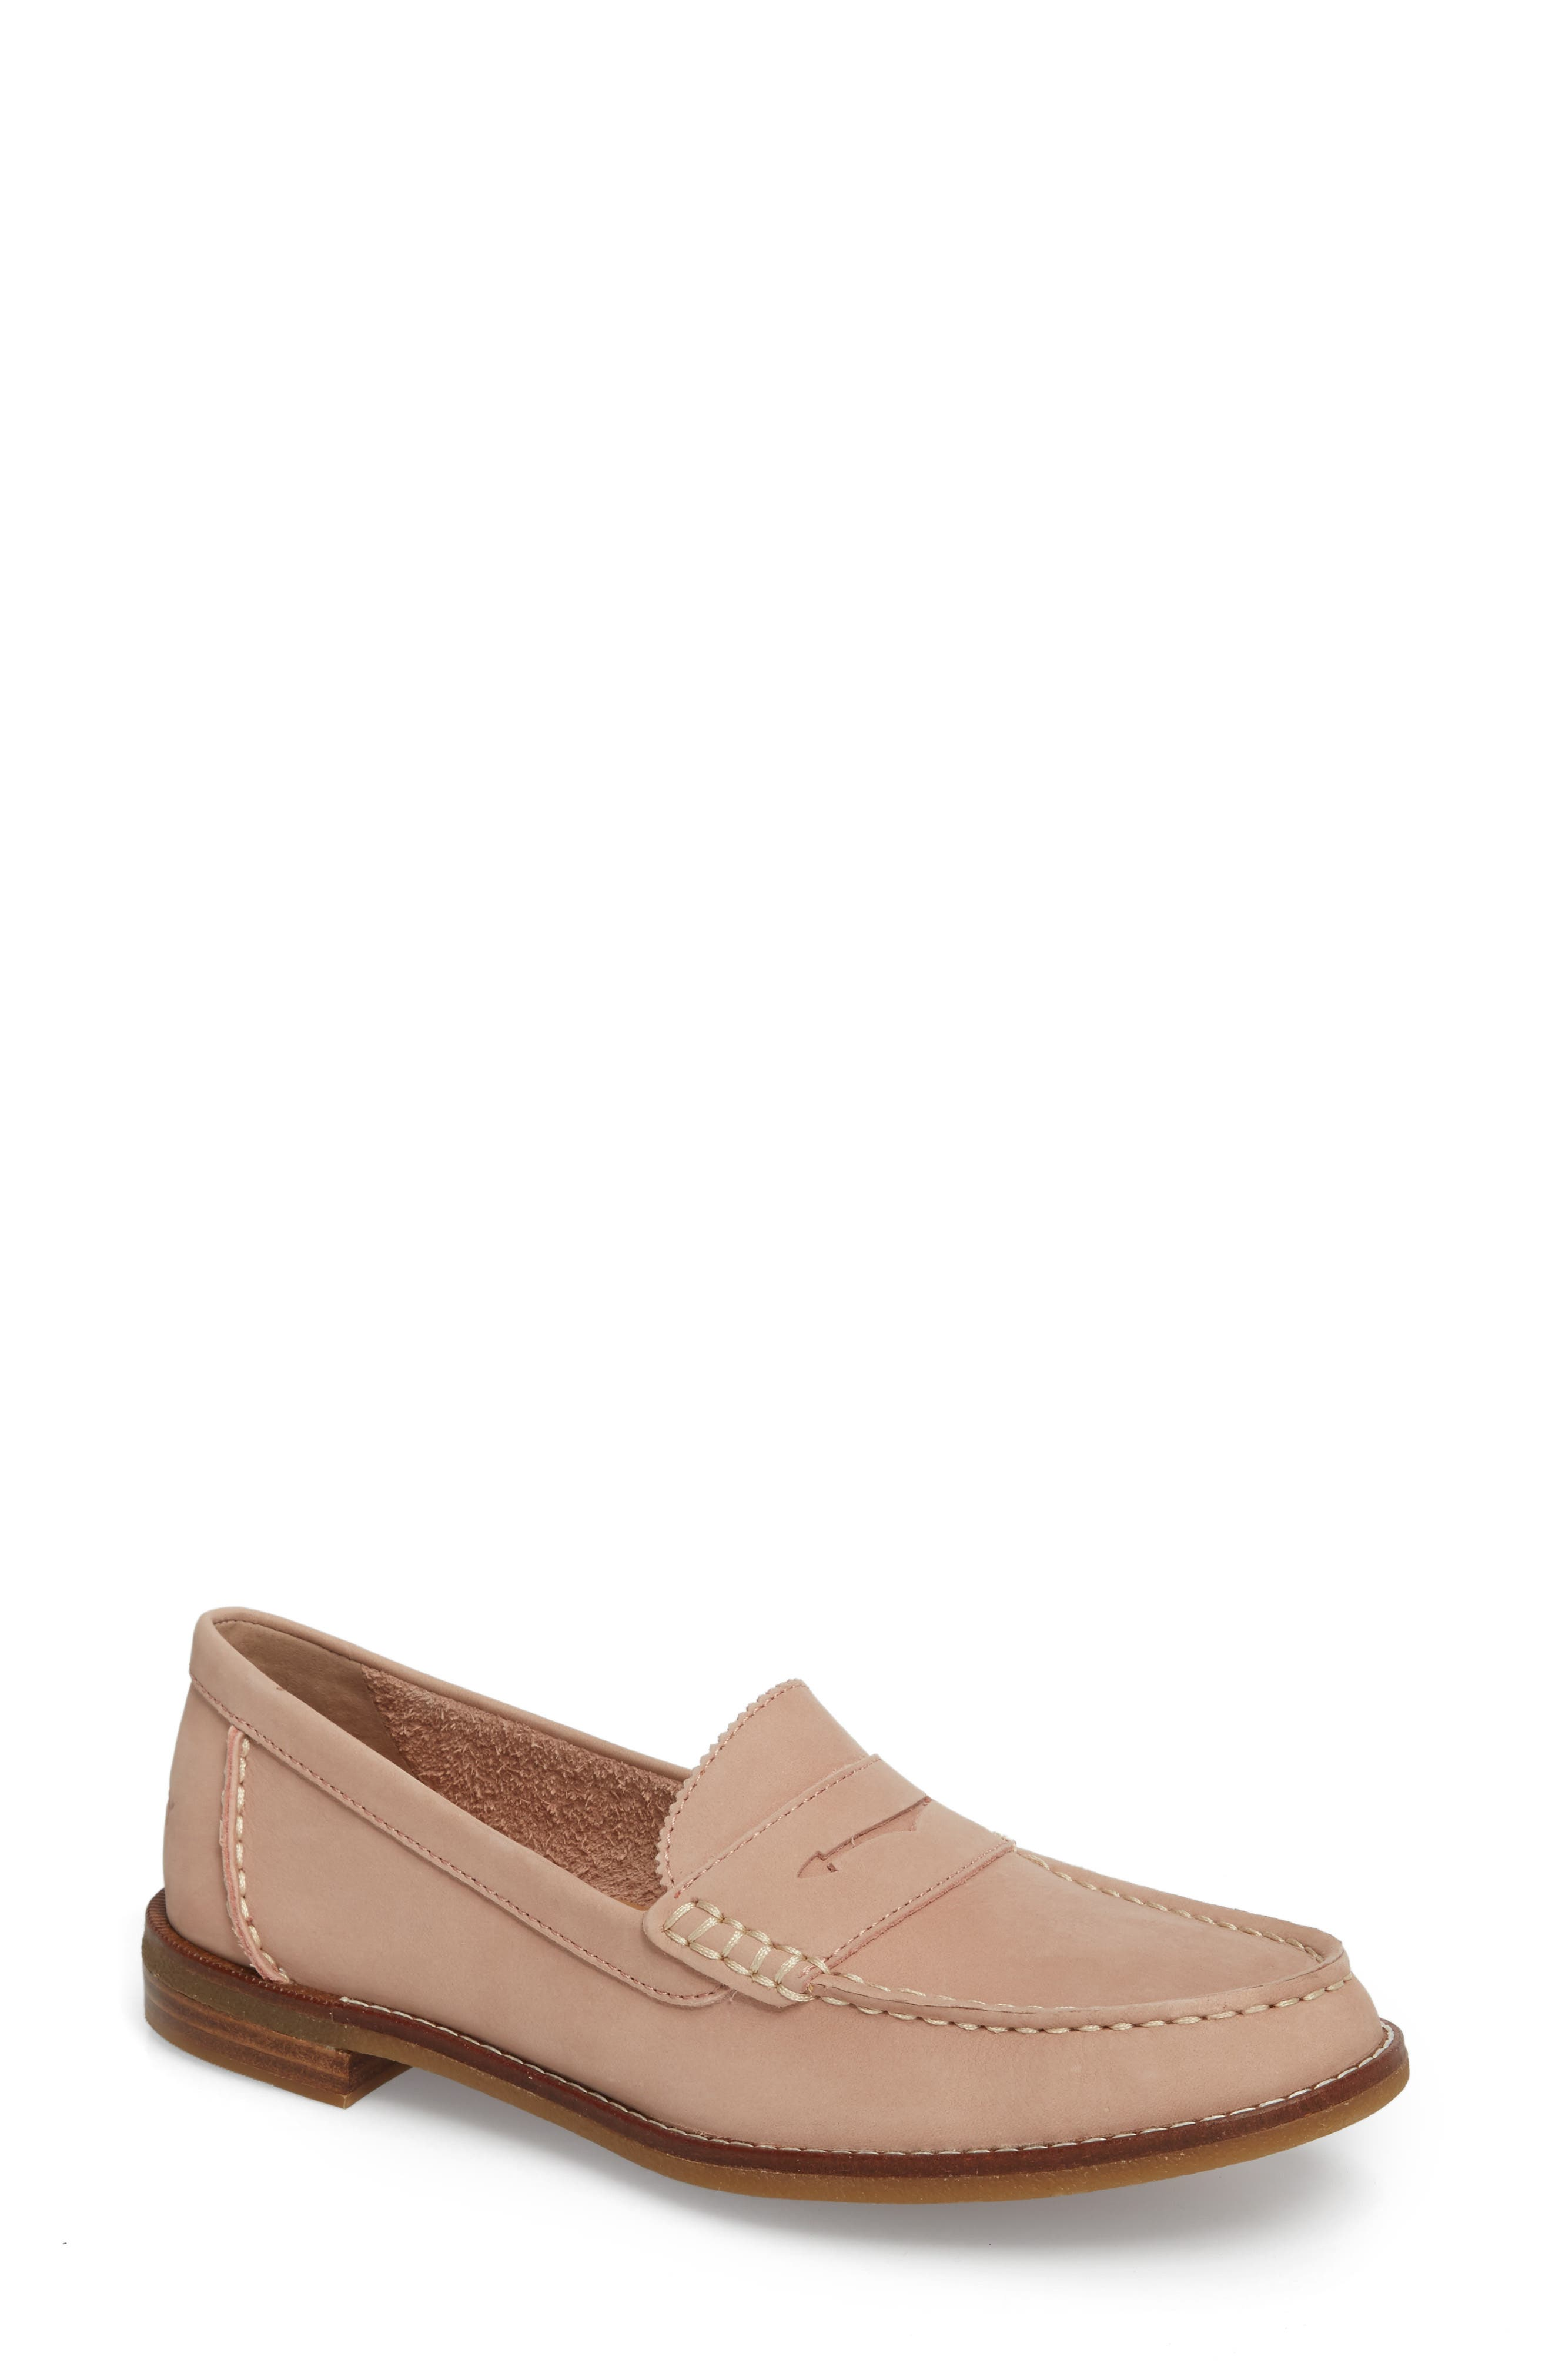 Seaport Penny Loafer,                             Main thumbnail 1, color,                             ROSE DUST LEATHER